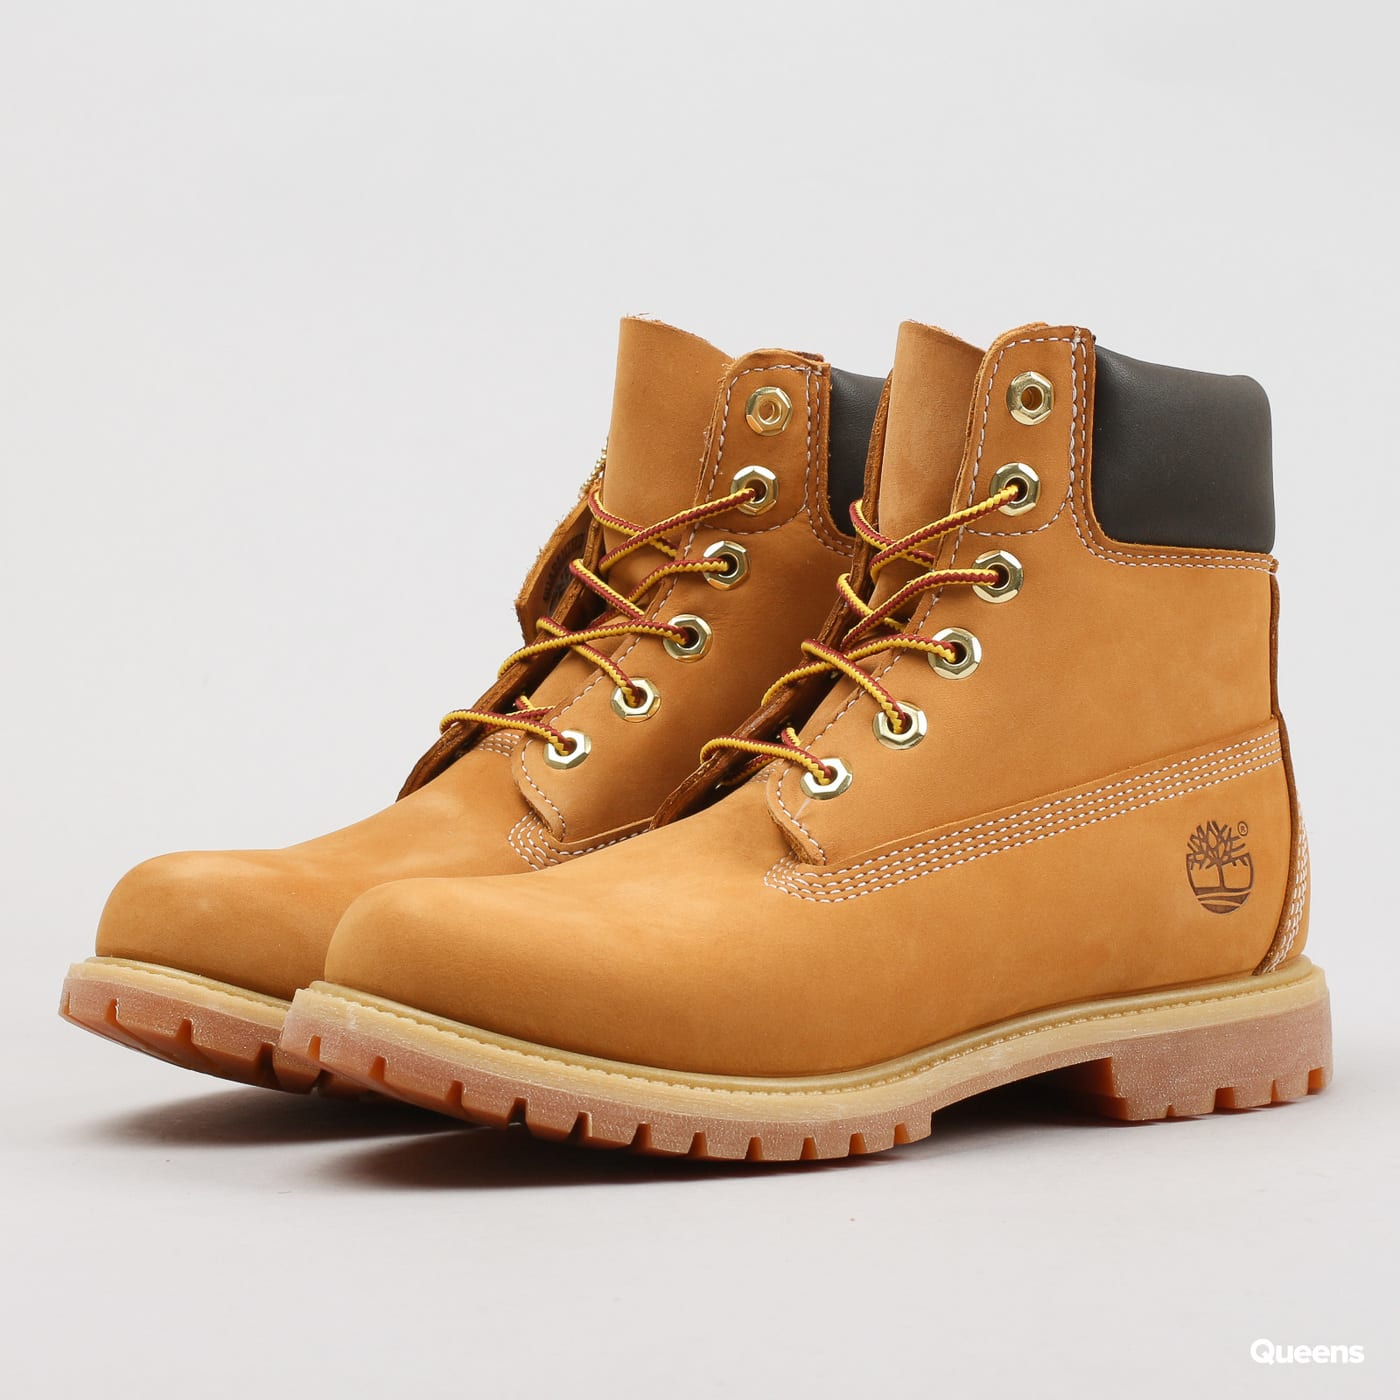 a43e09519c3 Pánské zimní boty Timberland 6in Premium Boot - W (10361 - WHE) – Queens 💚